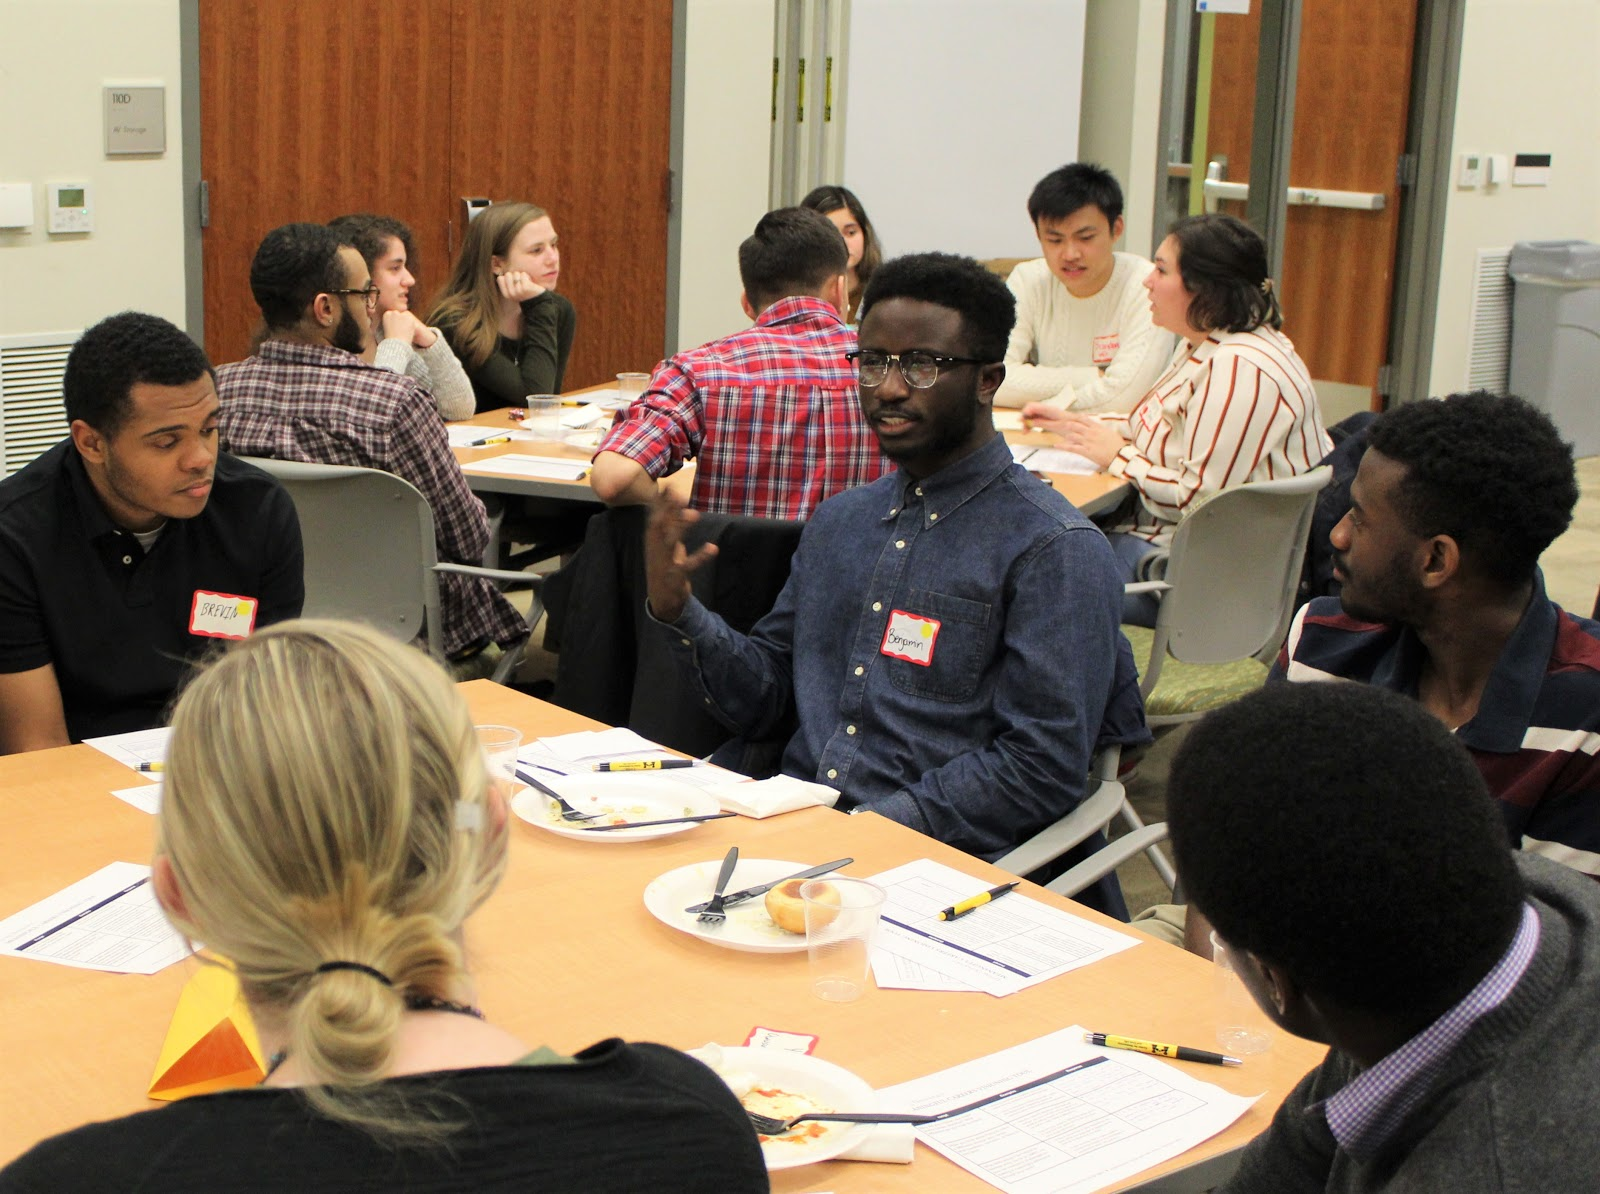 Students in a round table discussion